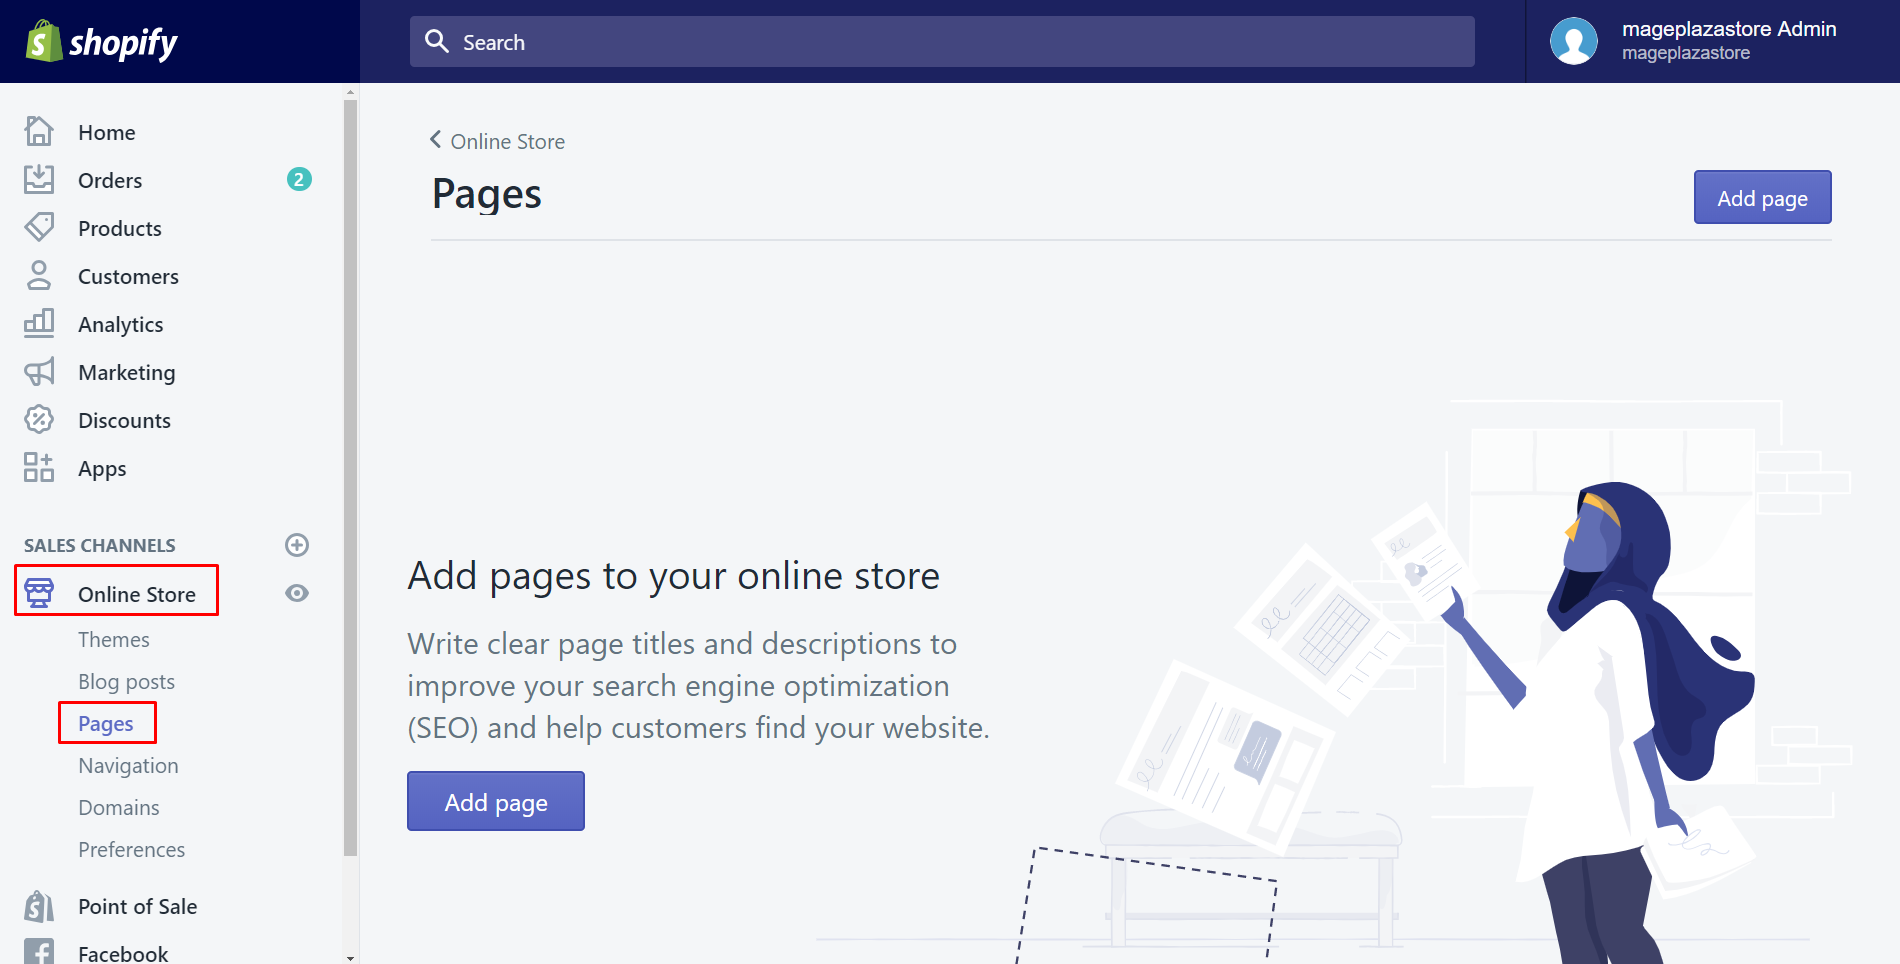 How to add a new webpage to your online store